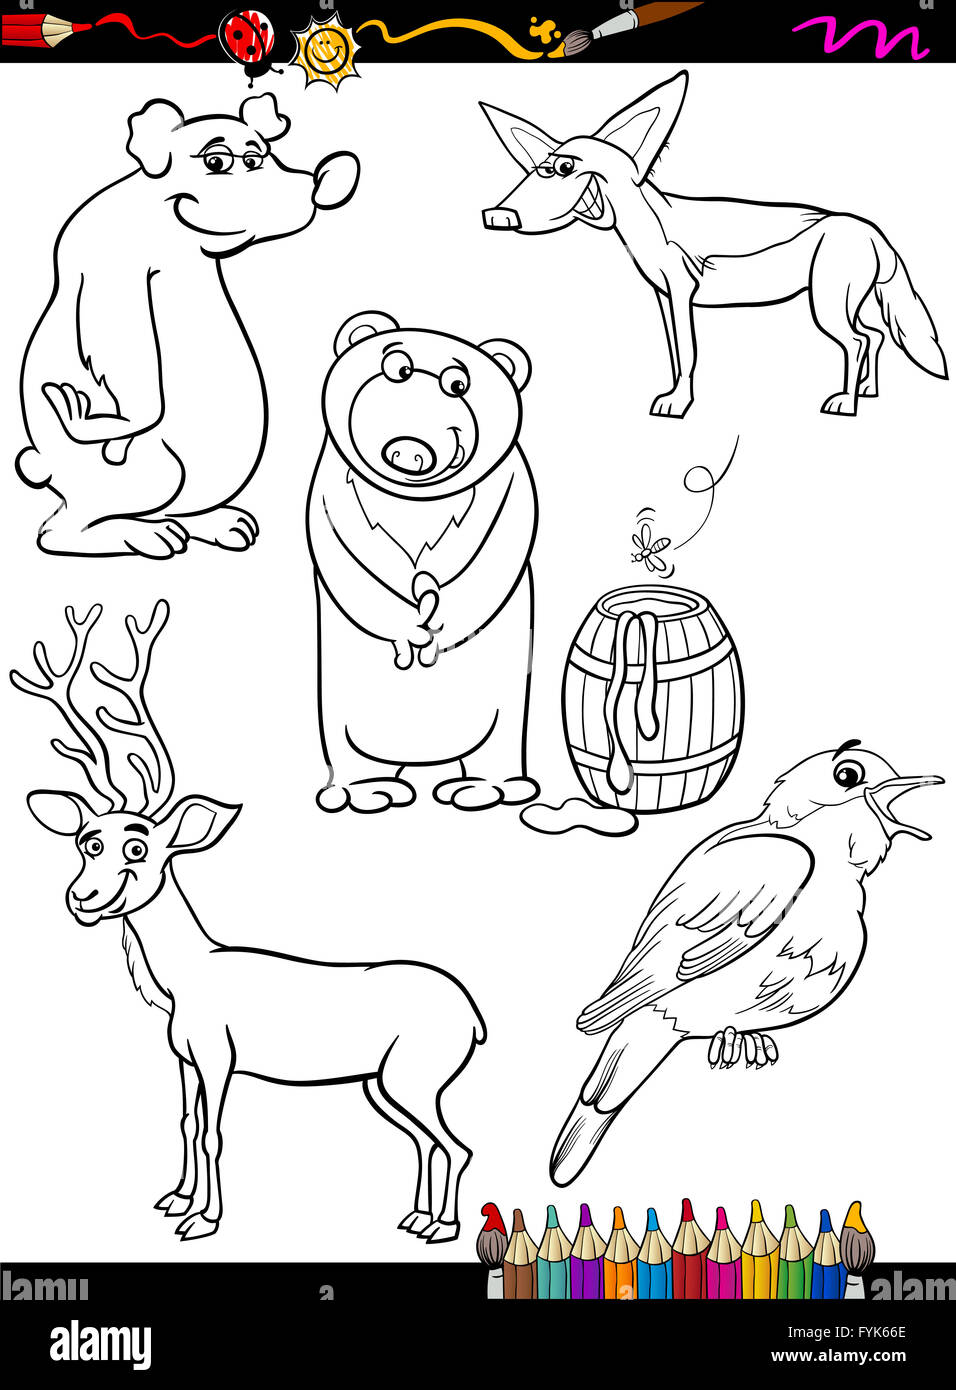 Animals Set Cartoon Coloring Page   Stock Image